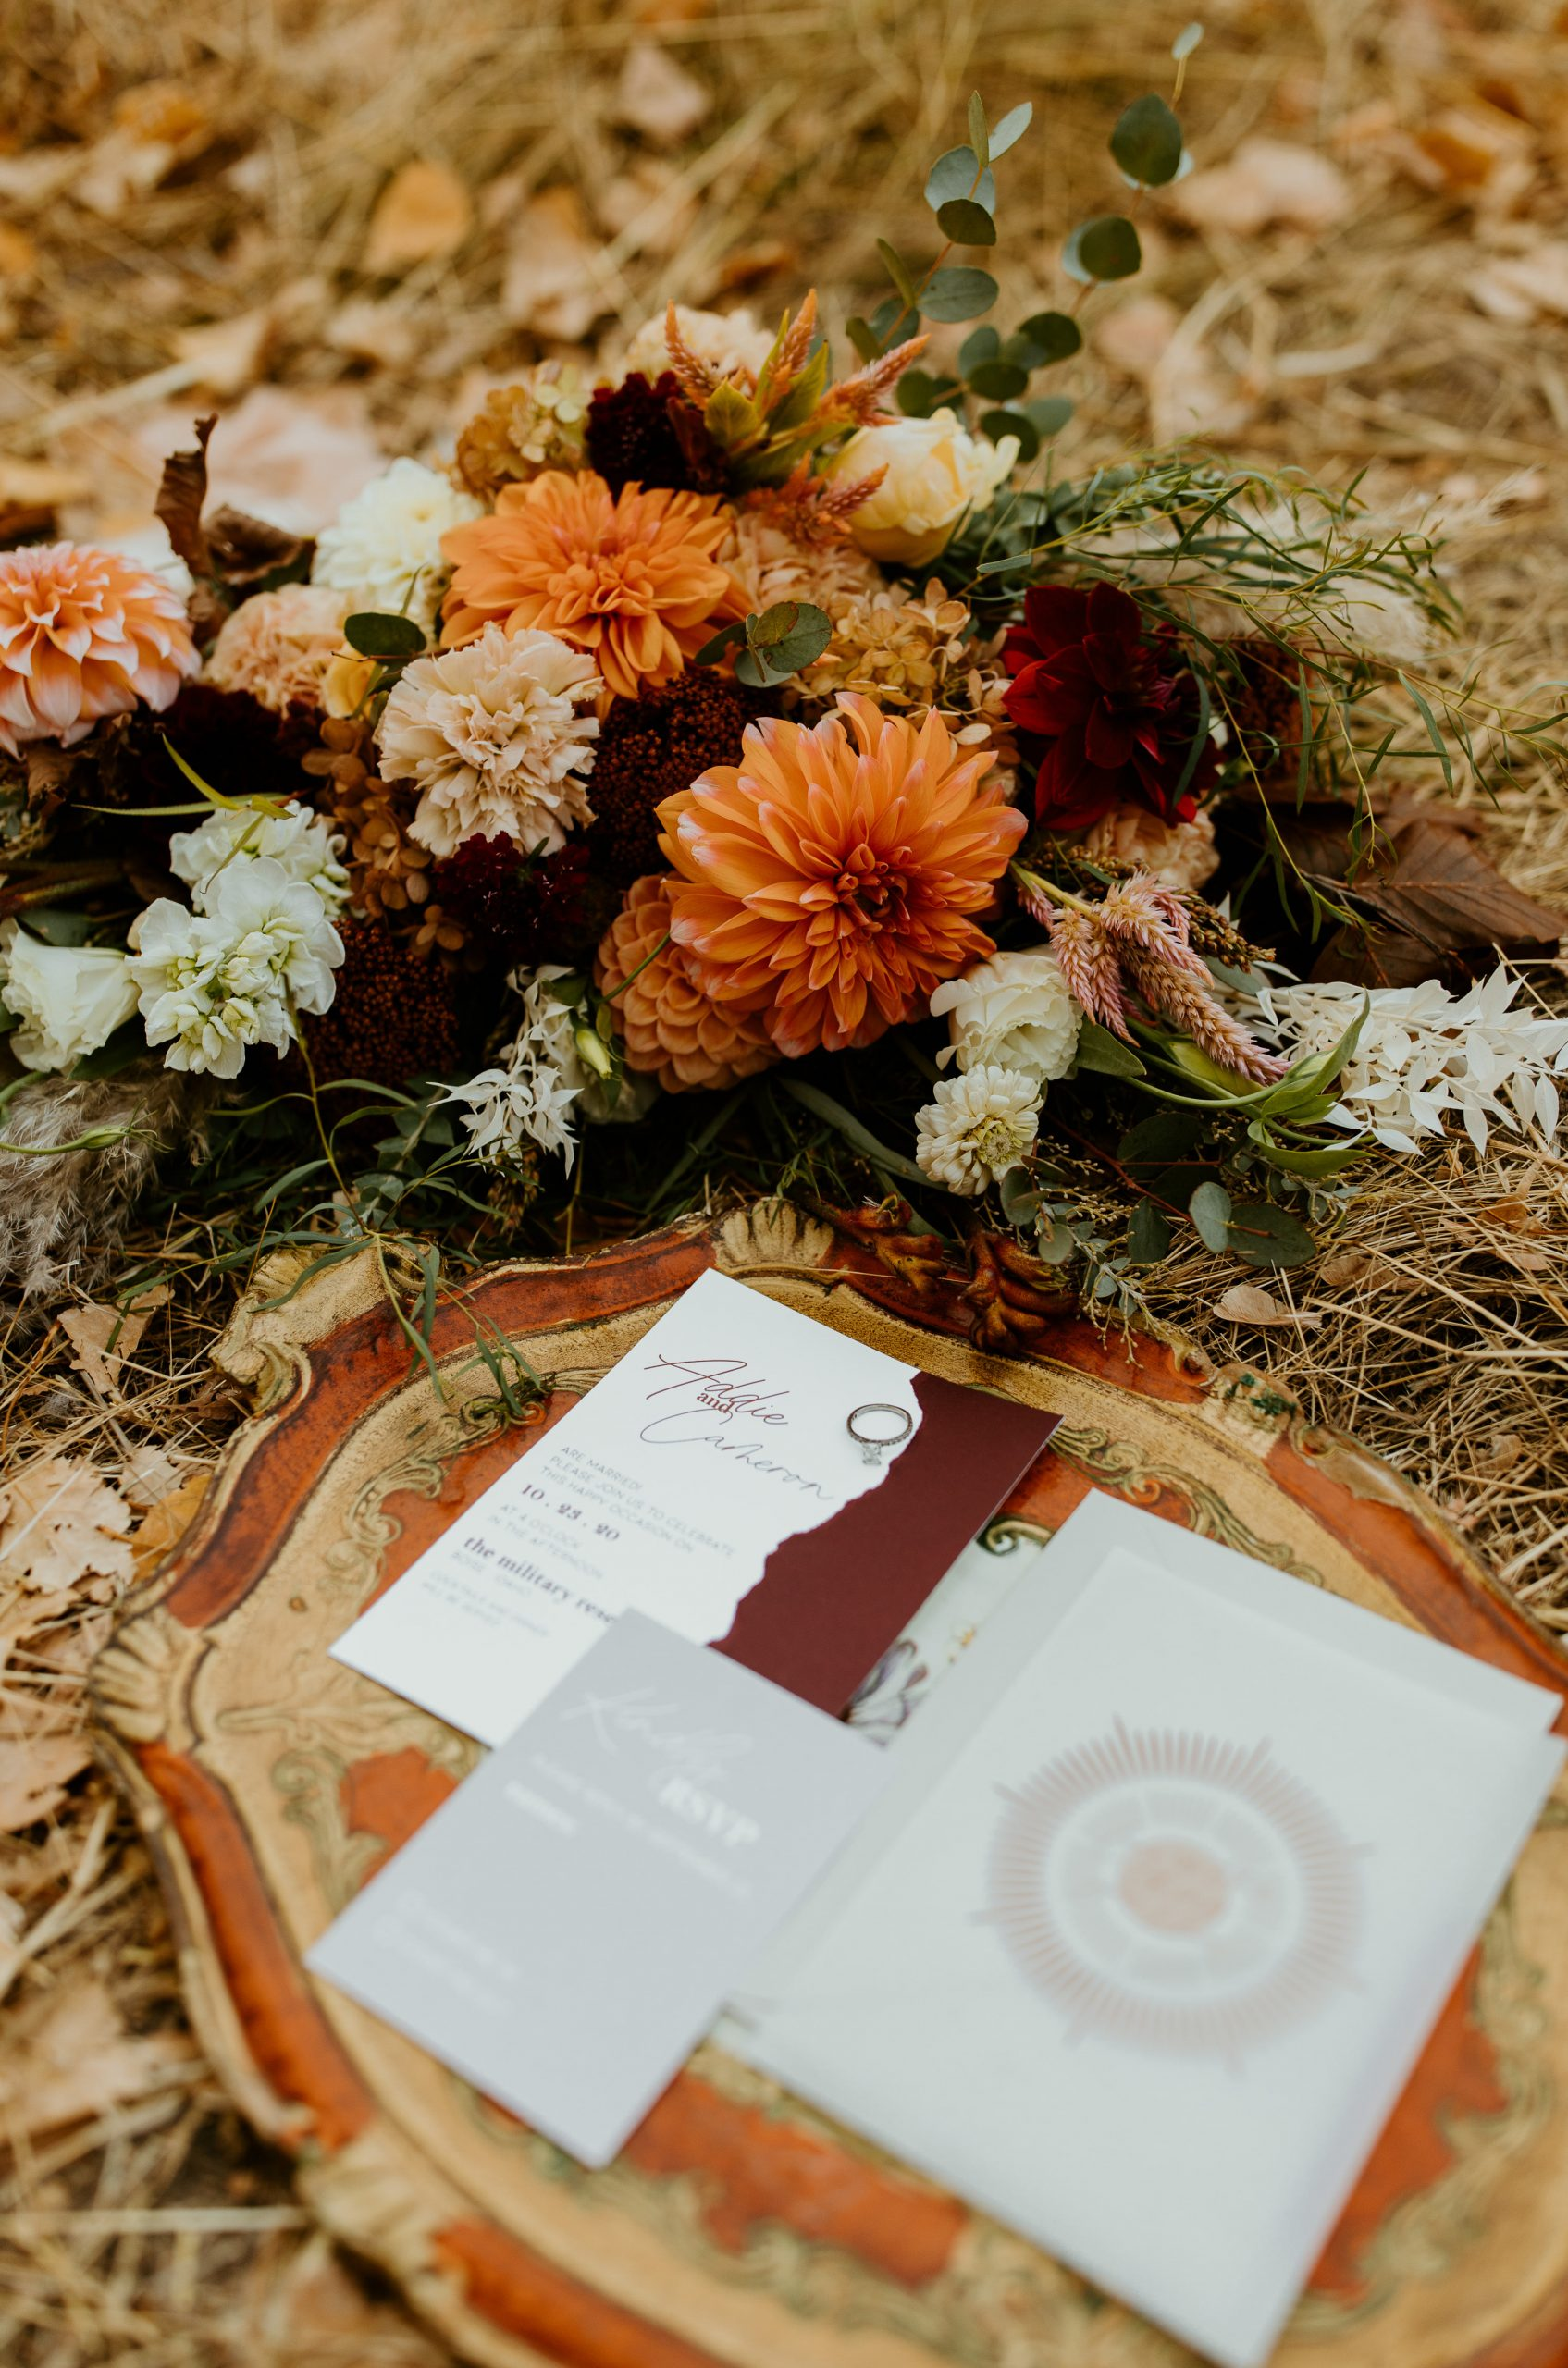 Our Florentine tray creates a beautiful backdrop for a display of wedding day keepsakes.